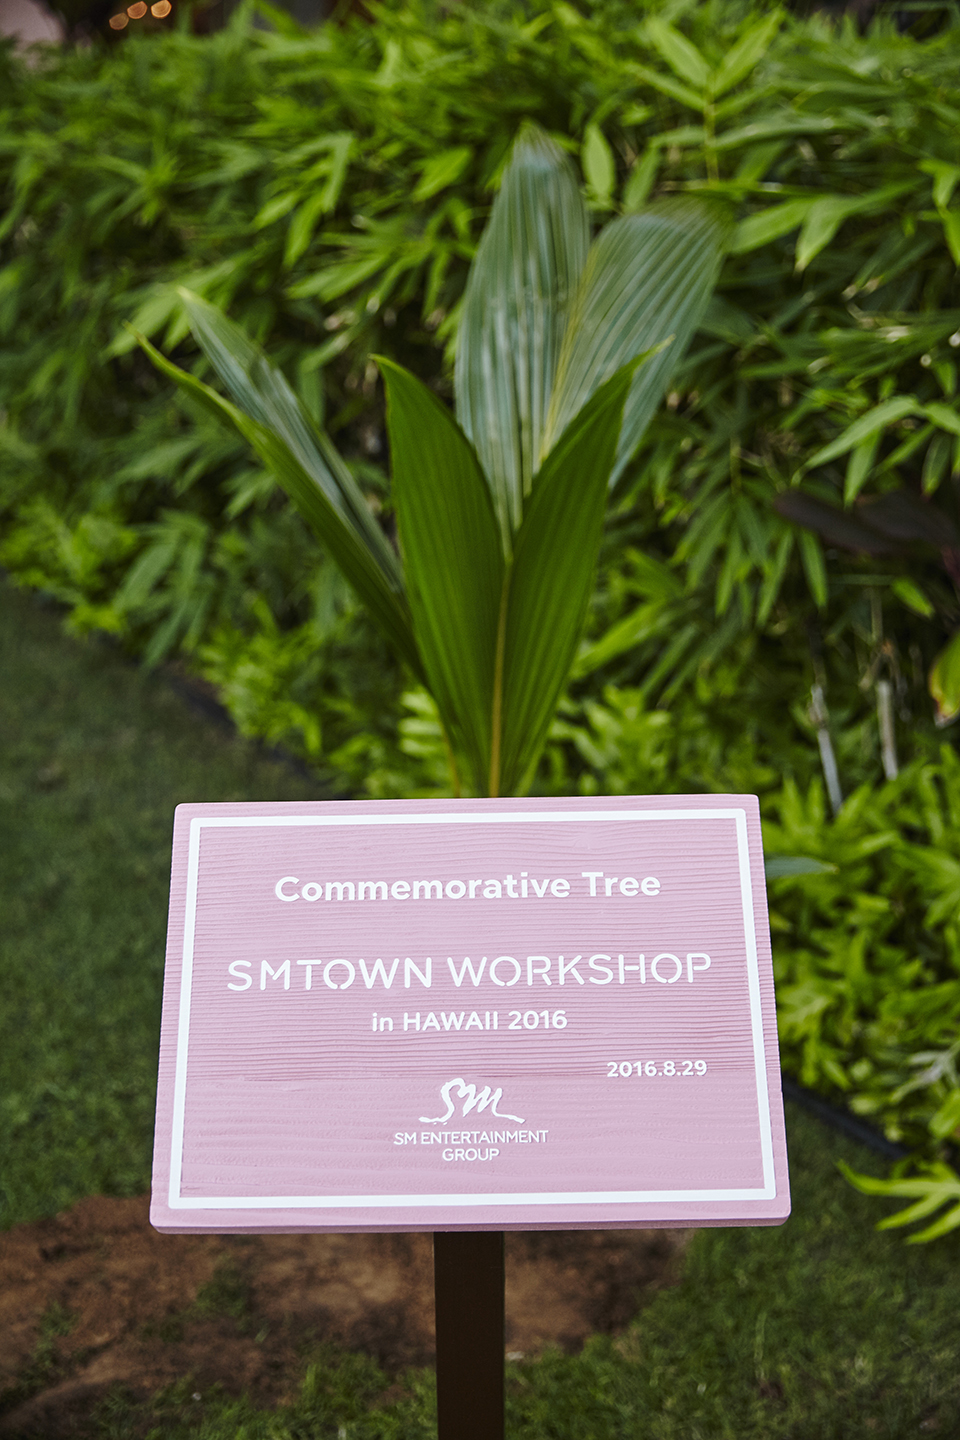 smtown-workshop-hawaii-3